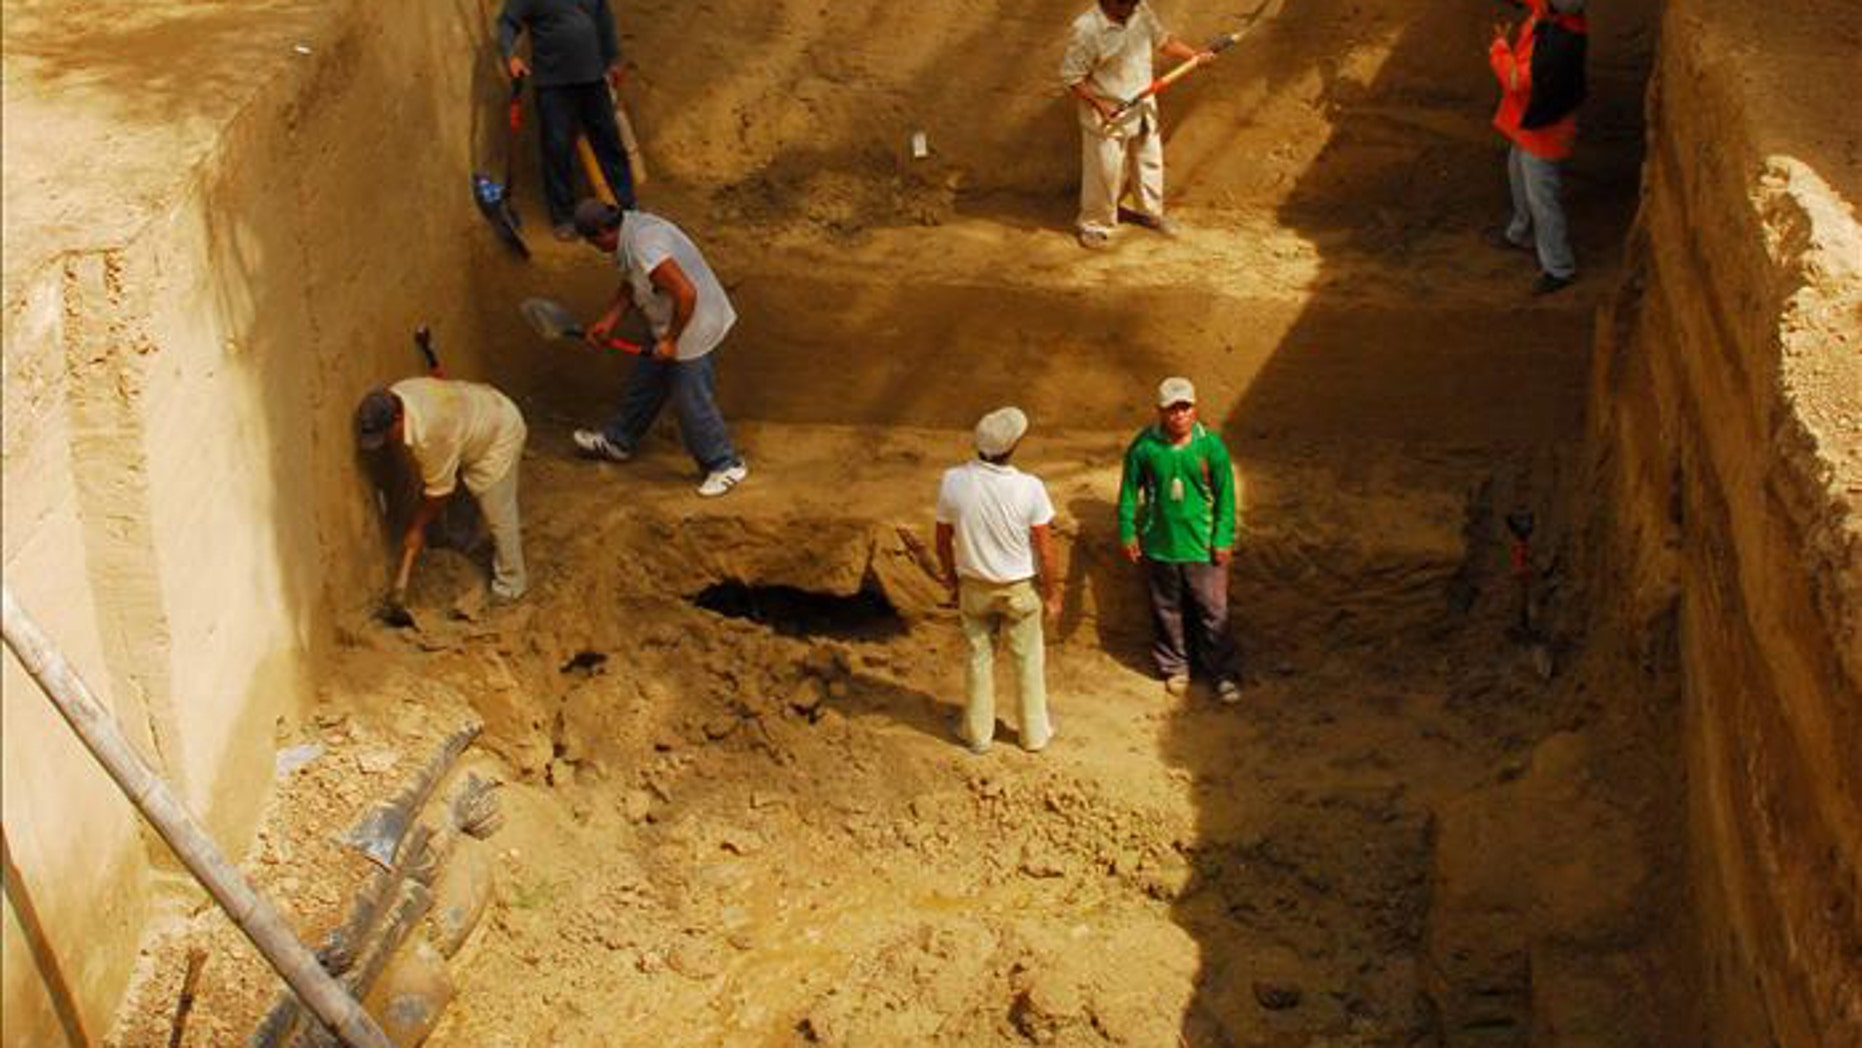 The tomb of a leader of the pre-Incan Sican culture some 1,200 years old was discovered recently in the Las Ventanas archaeological zone, in Peru's Lambayeque region.